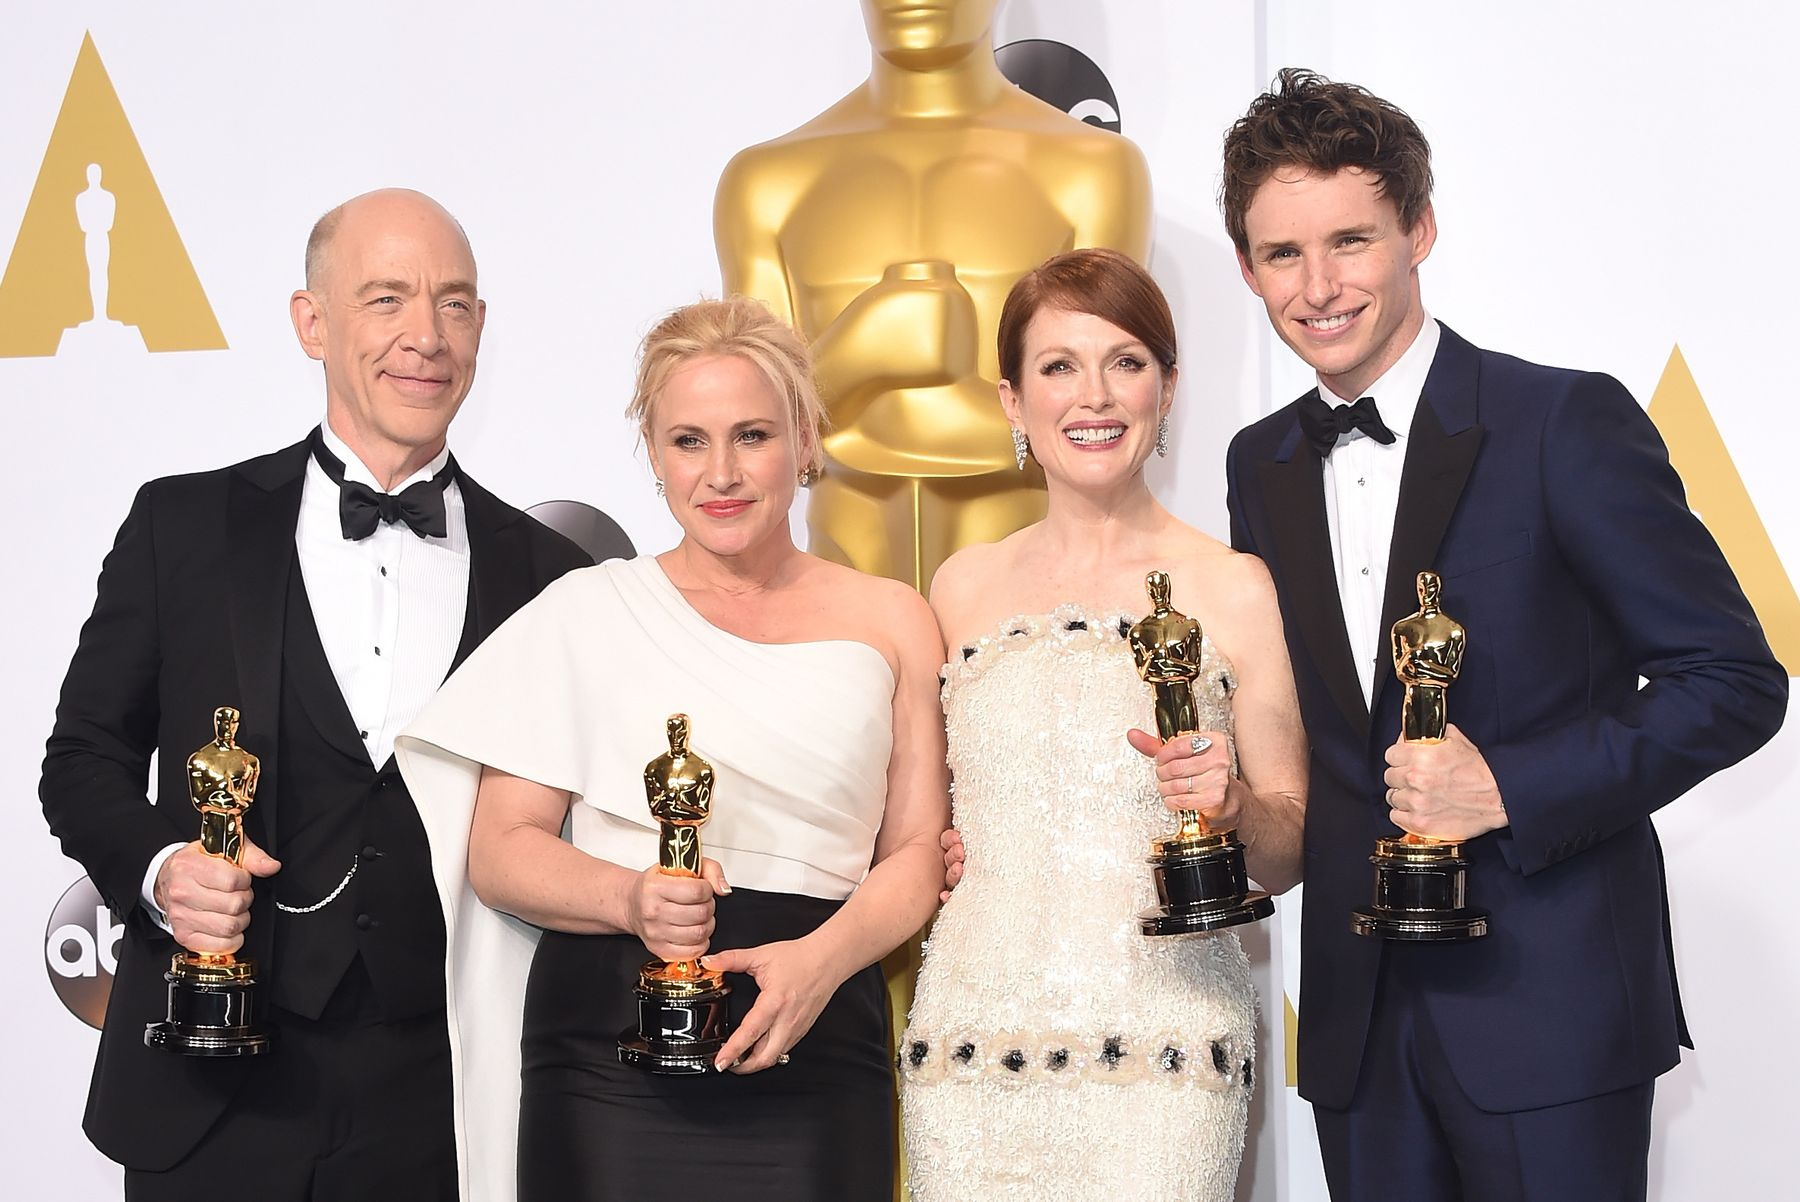 HOLLYWOOD, CA - FEBRUARY 22: (L-R) Actors J.K. Simmons, winner of the award for best actor in a supporting role for the film 'Whiplash', Patricia Arquette winner of the award for Best Actress in a Supporting Role for 'Boyhood', Julianne Moore winner for the Best Actress in a Leading Role Award for 'Still Alice', and Eddie Redmayne winner of the Best Actor in a Leading Role Award for 'The Theory of Everything' poses in the press room during the 87th Annual Academy Awards at Loews Hollywood Hotel on February 22, 2015 in Hollywood, California. (Photo by Jason Merritt/Getty Images)